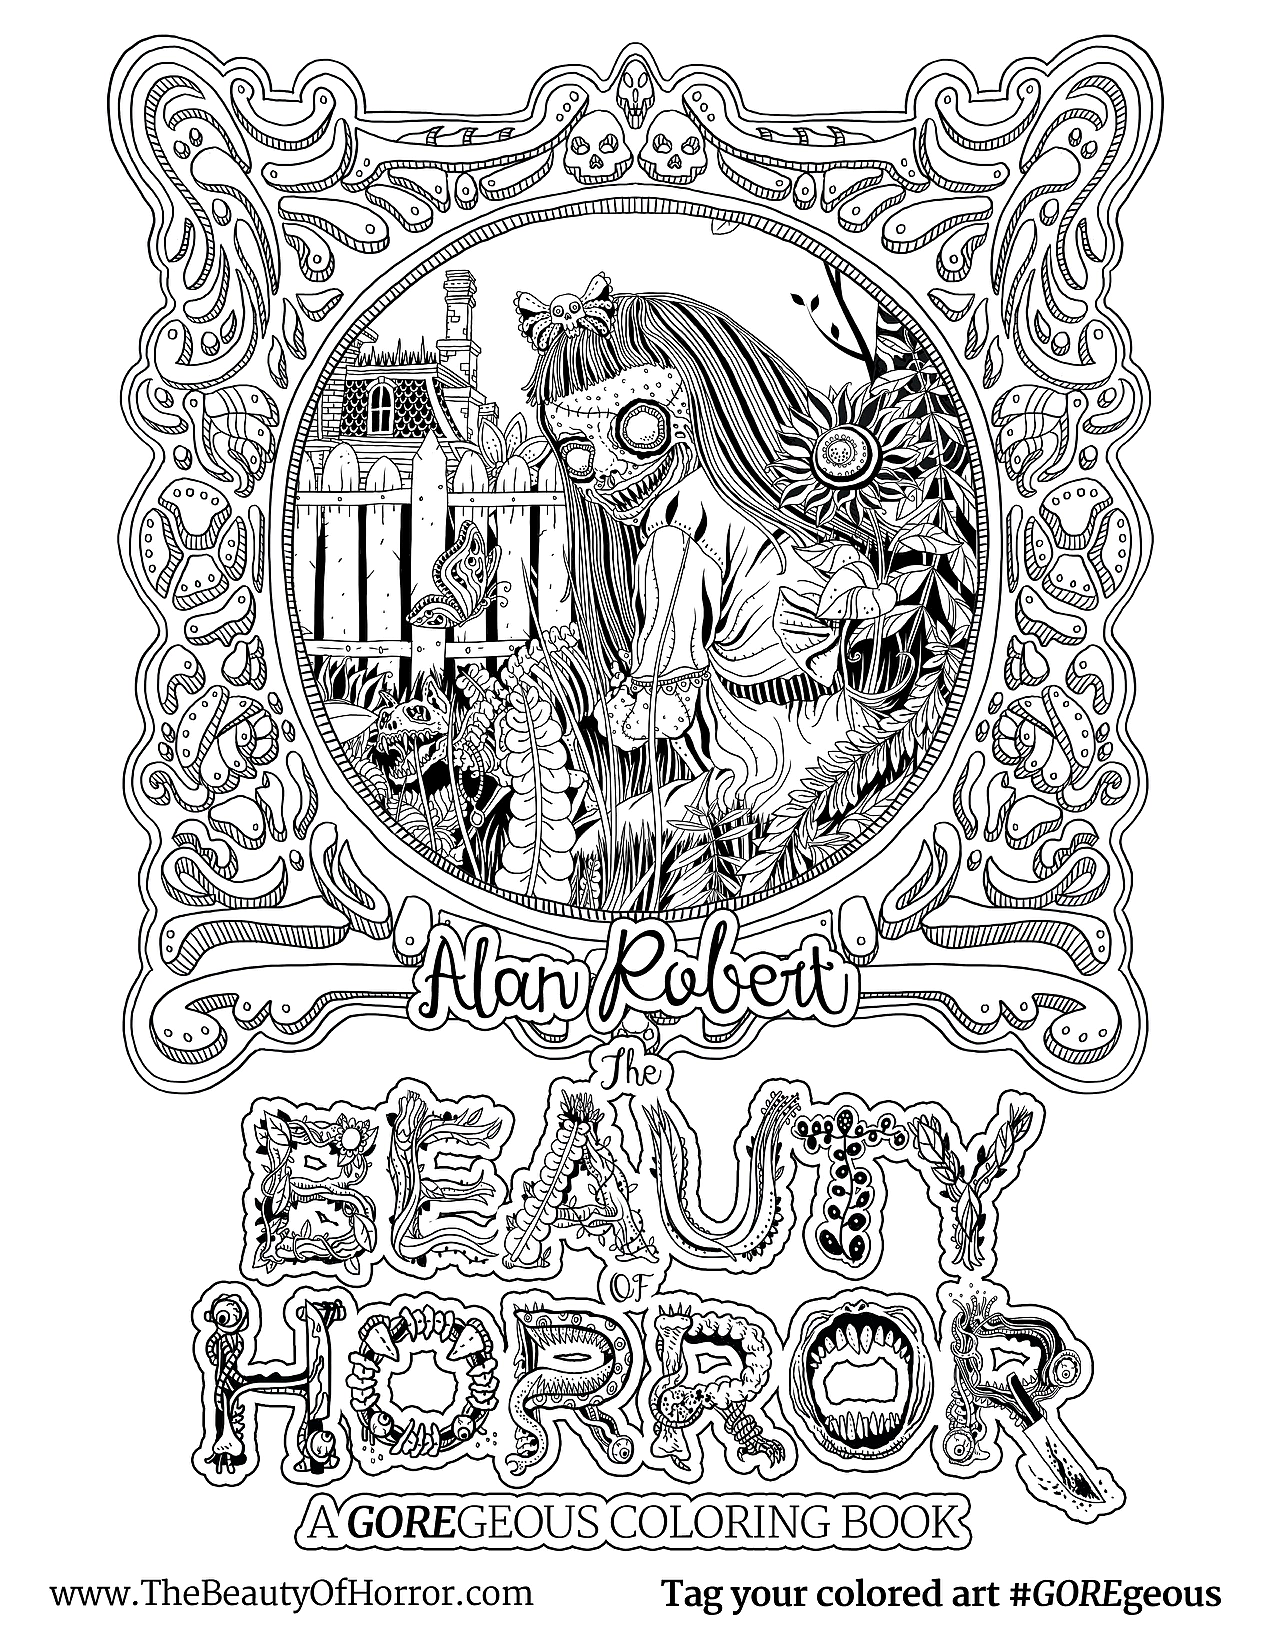 The Beauty of Horror 1: A GOREgeous Coloring Book: Amazon.ca: Alan ... | 1650x1275